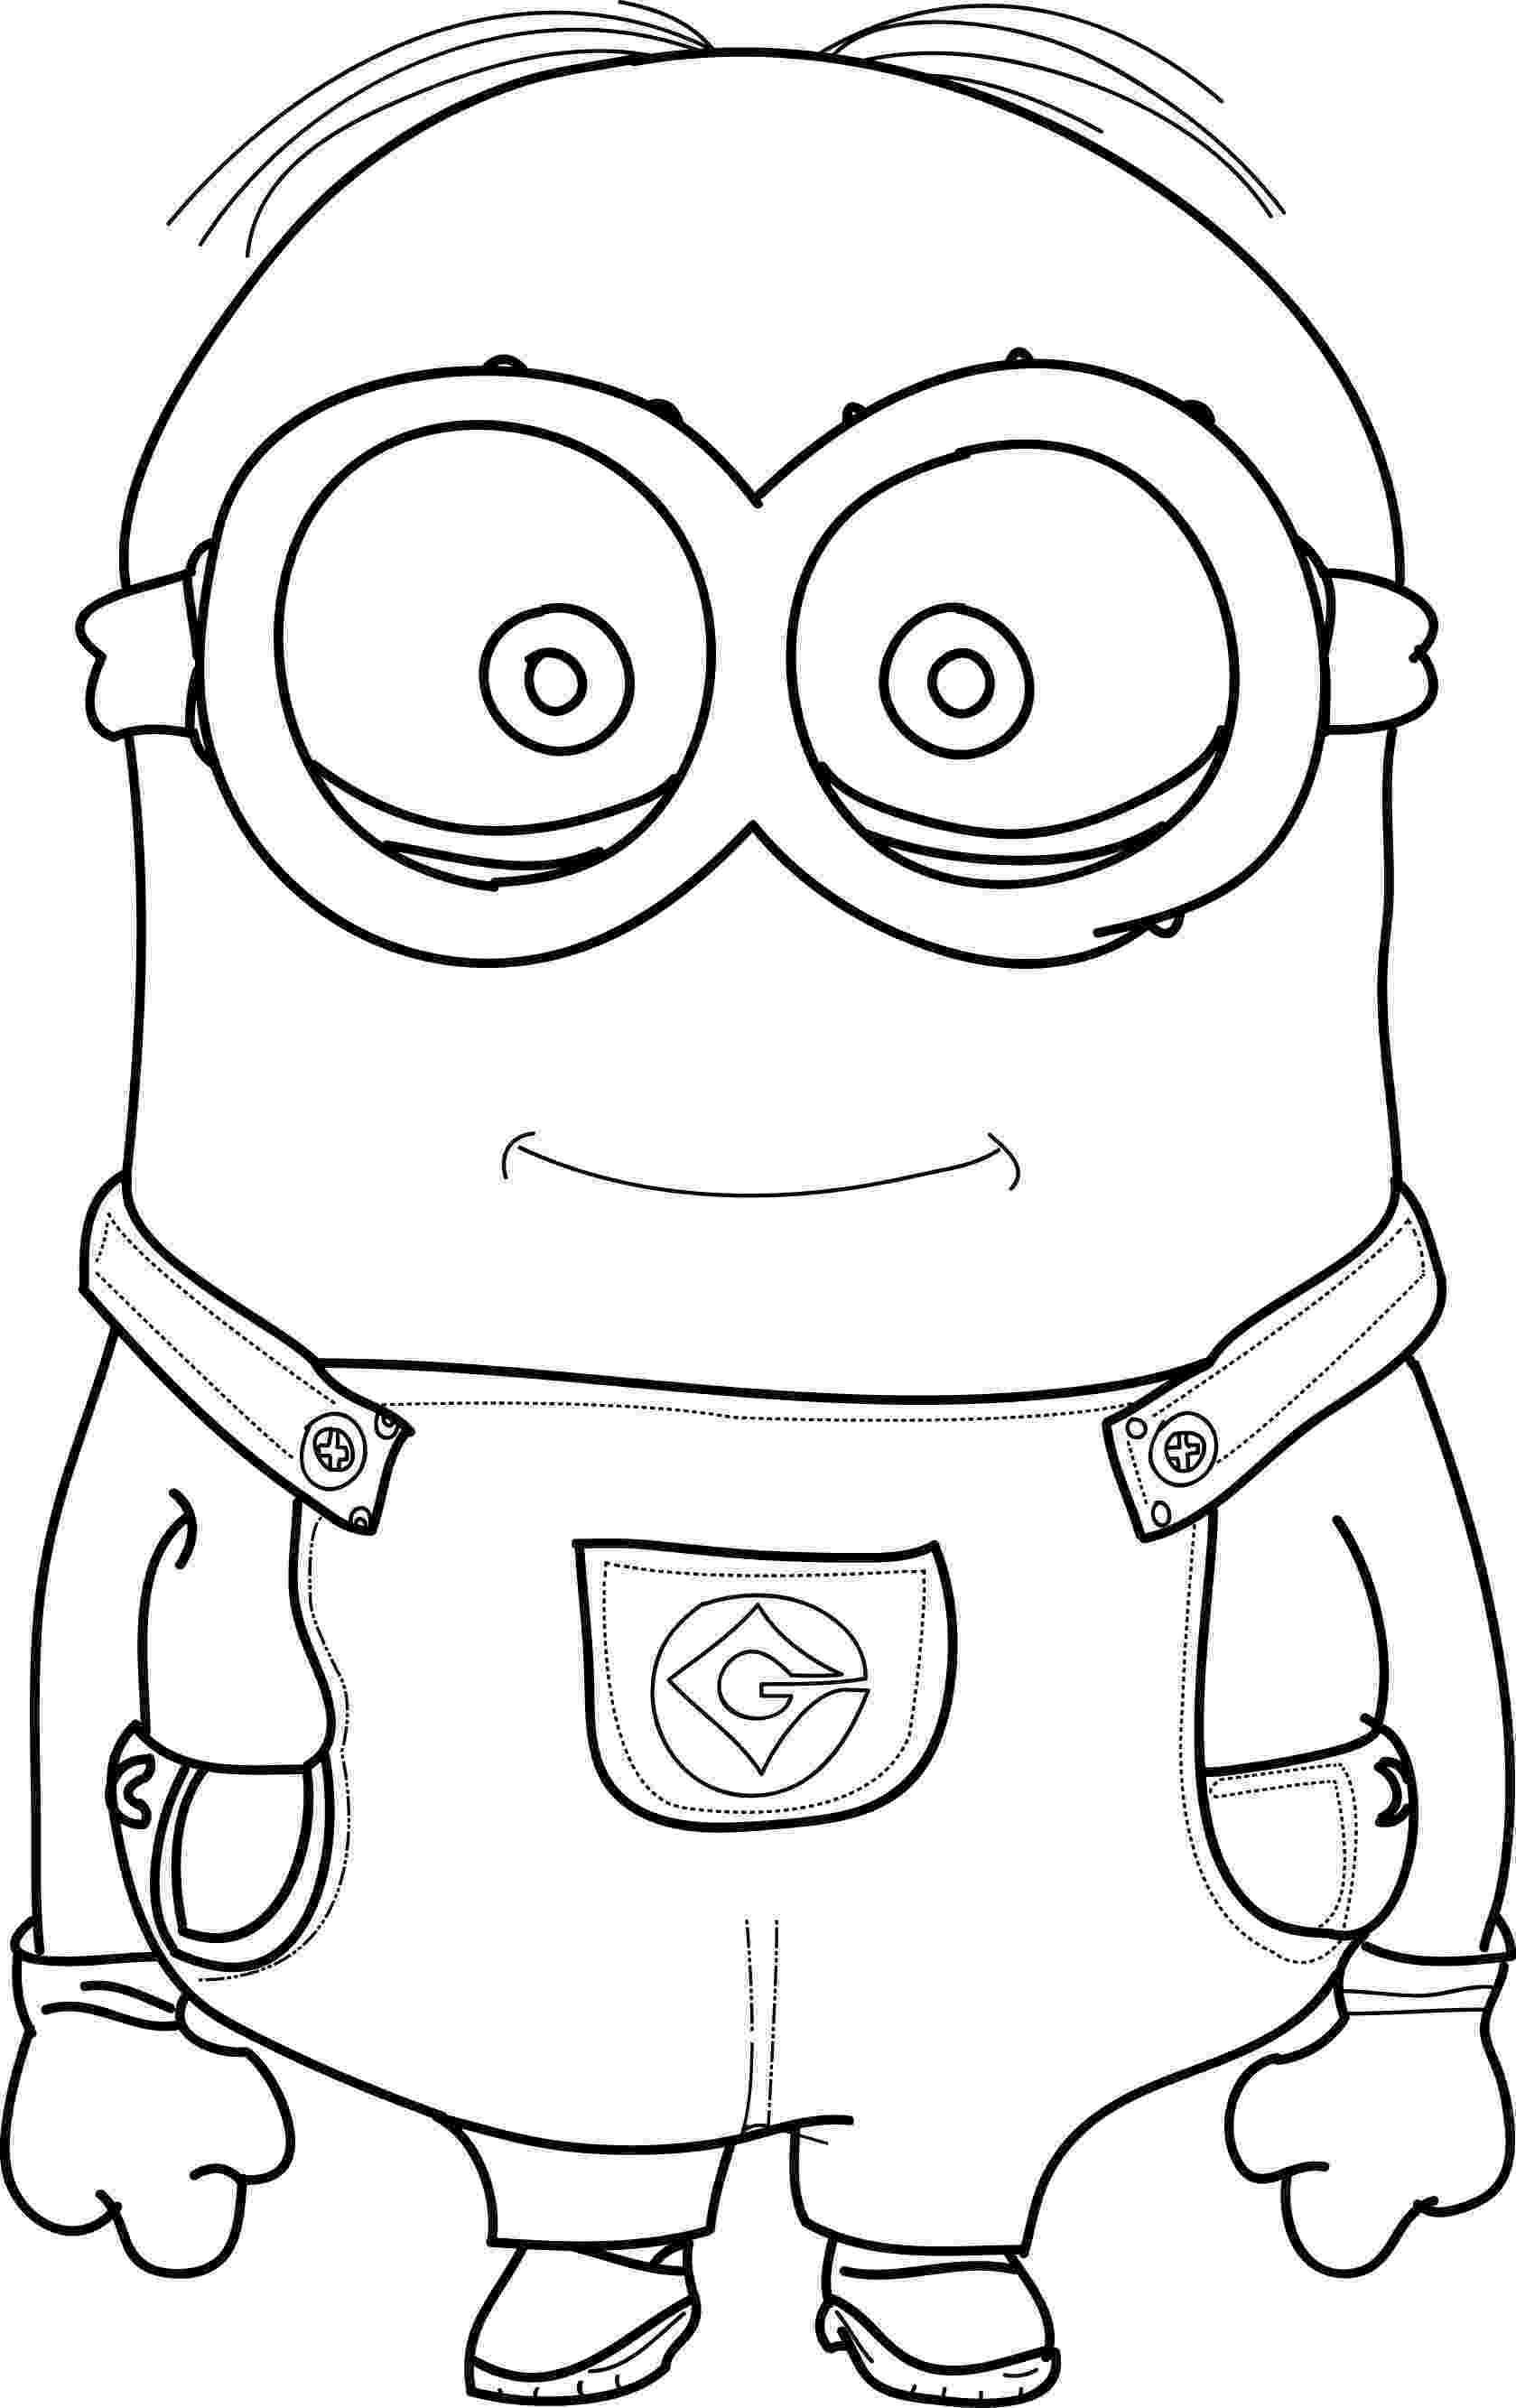 awesome coloring pages for kids printable cool coloring pages designs coloring home kids pages awesome coloring for